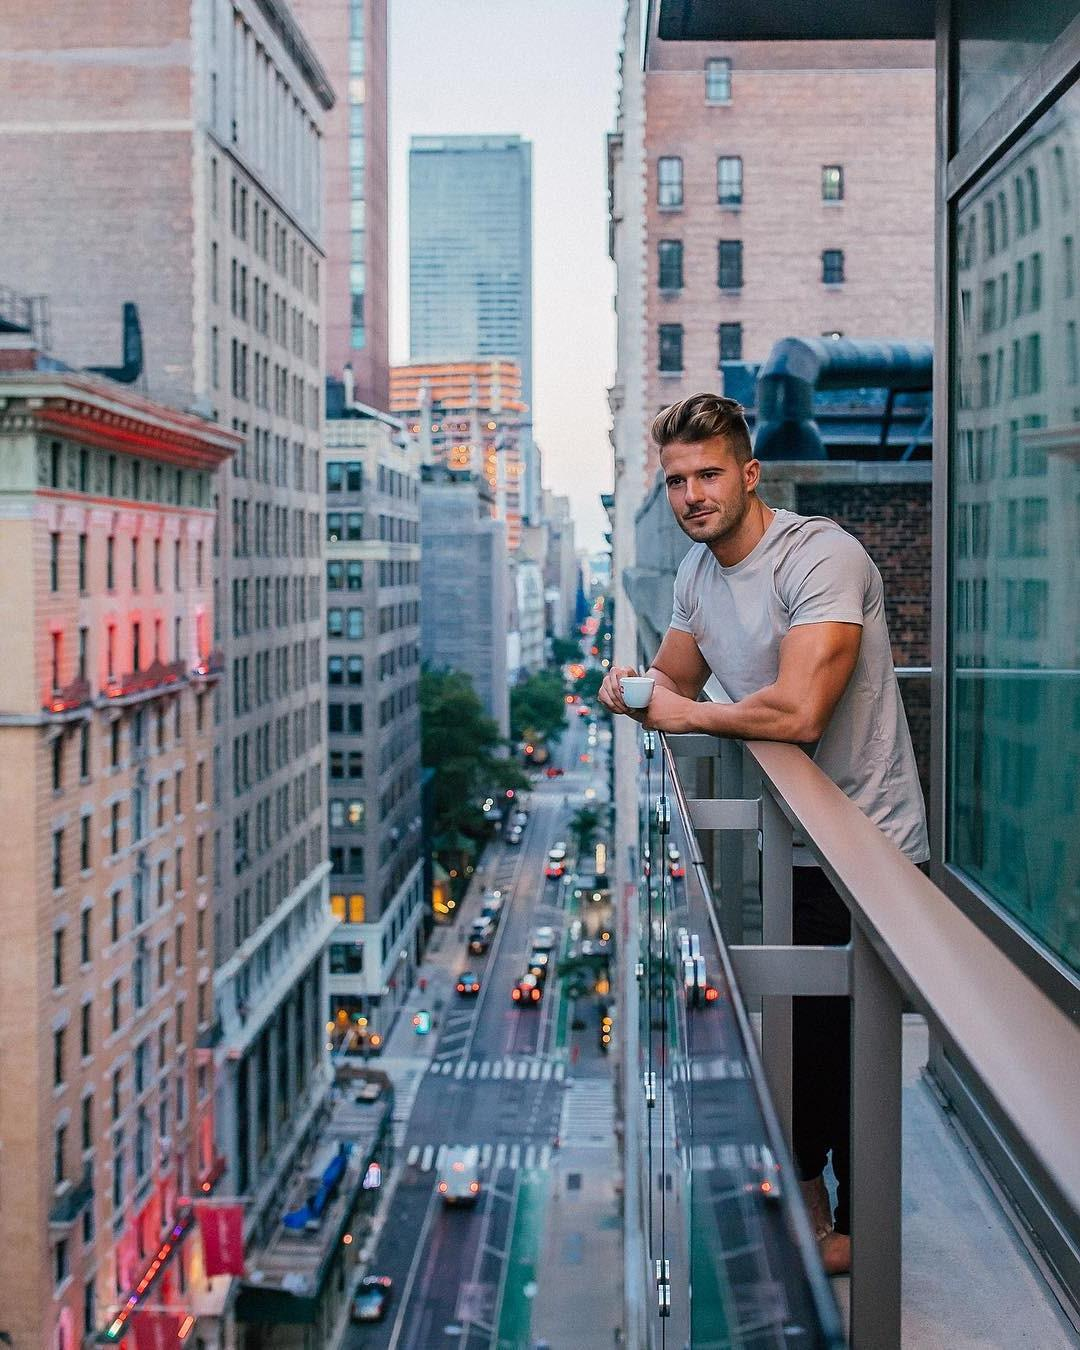 city-view-building-morning-coffee-handsome-triceps-hunk-drinking